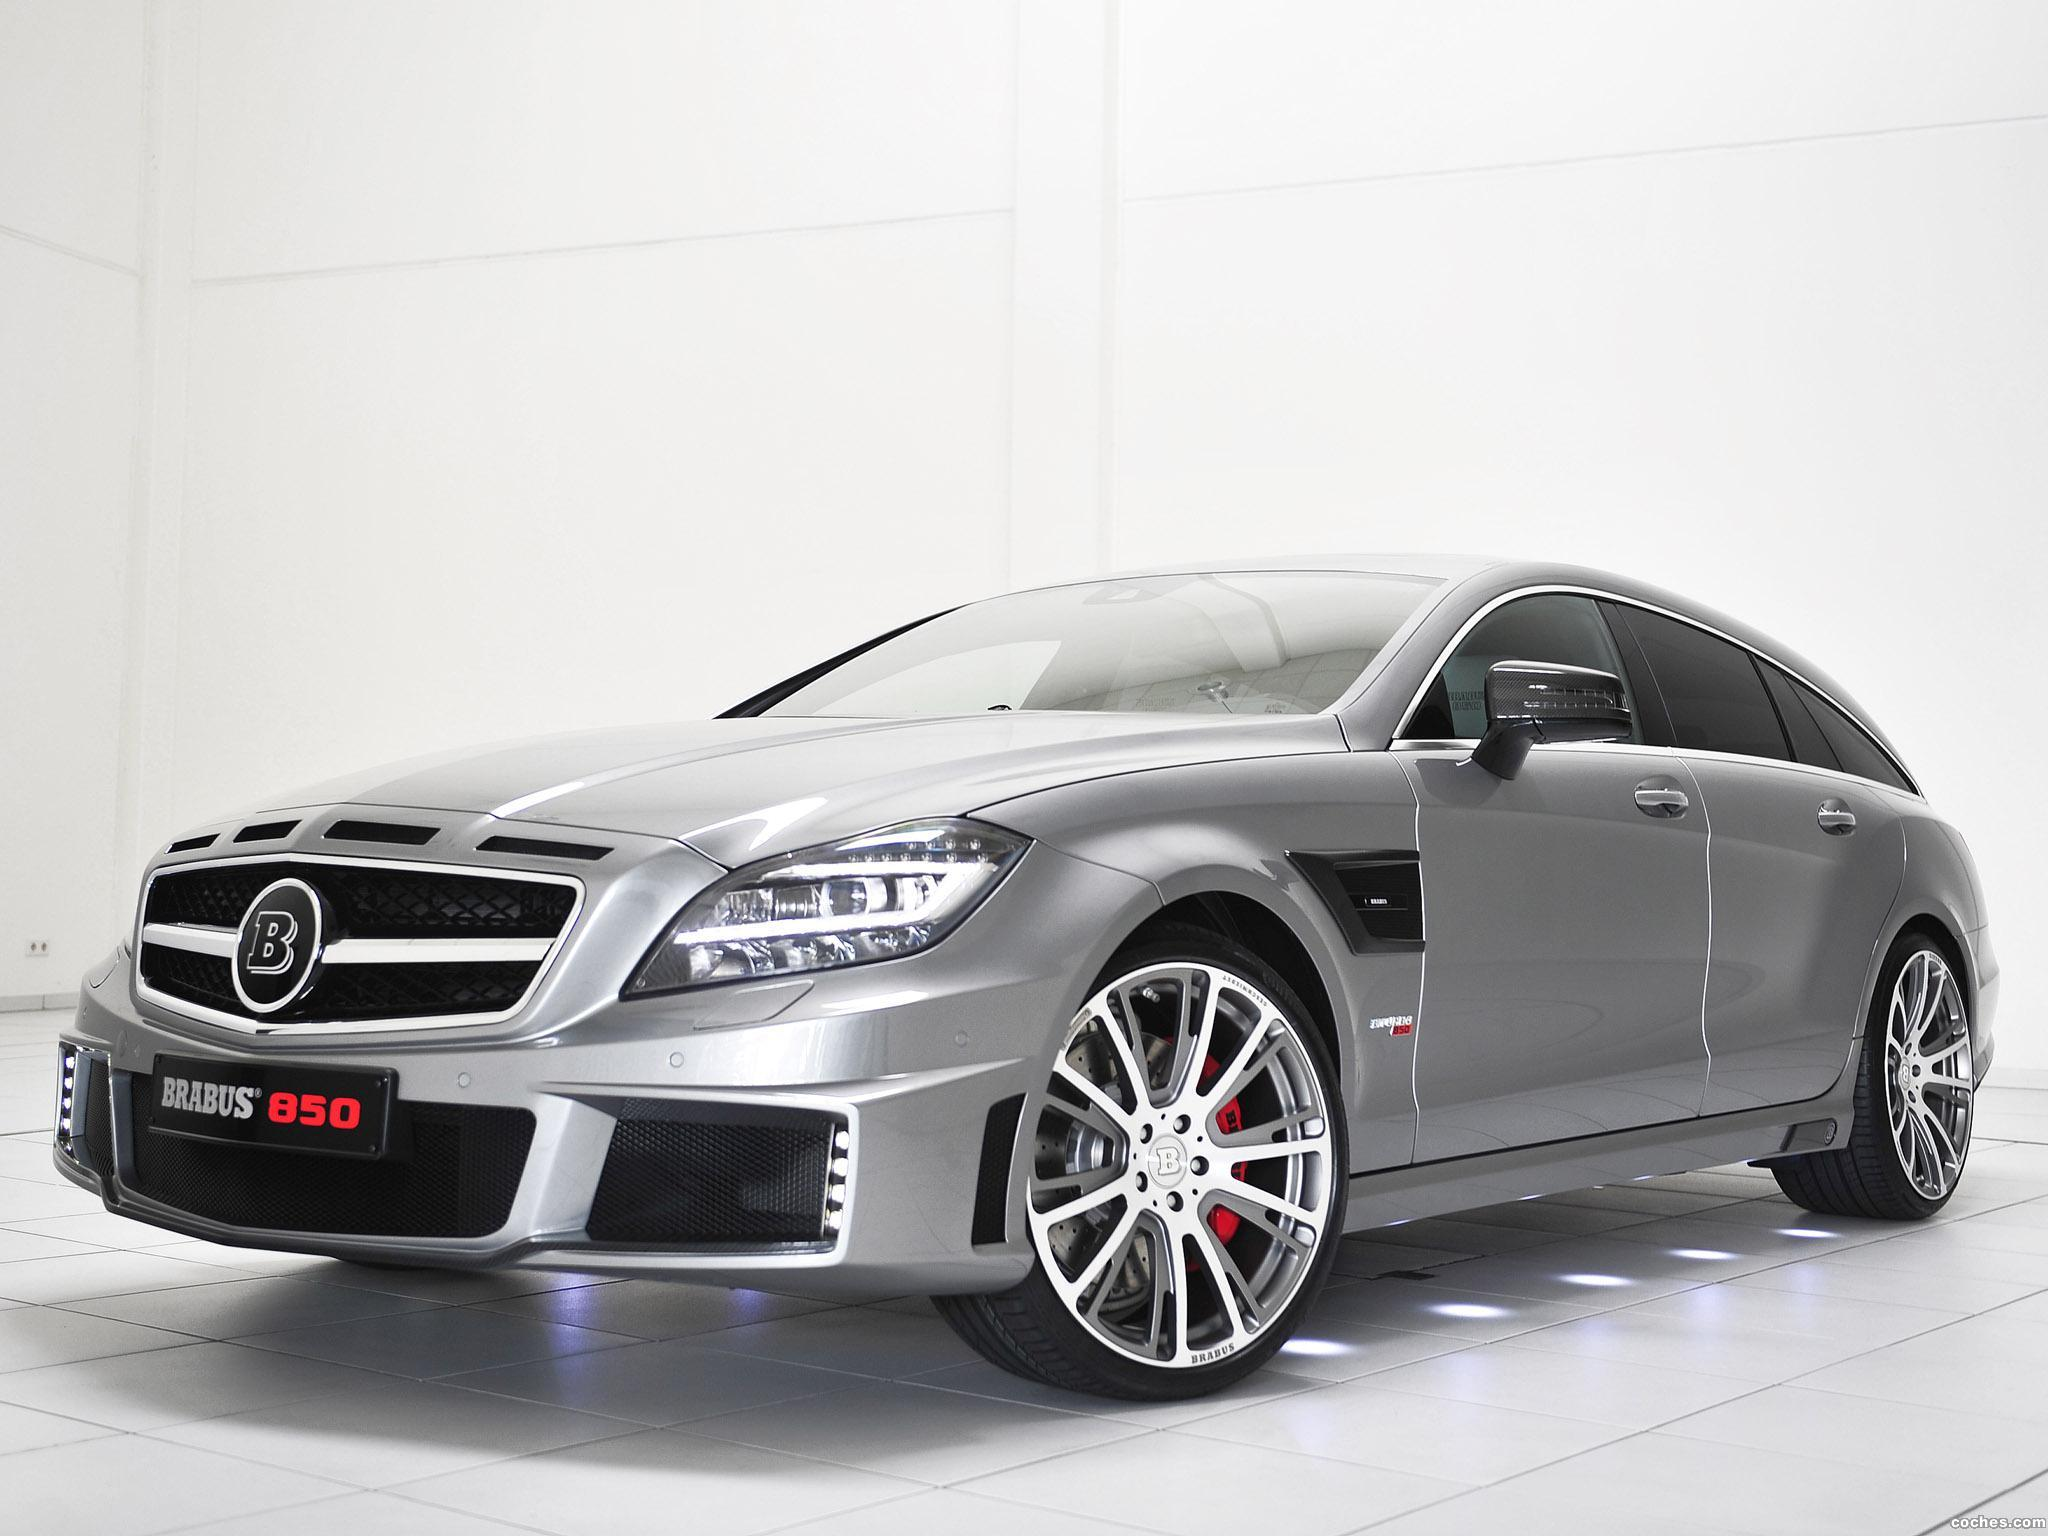 Foto 0 de Mercedes Brabus CLS Shooting Brake 850 6.0 Biturbo 2013